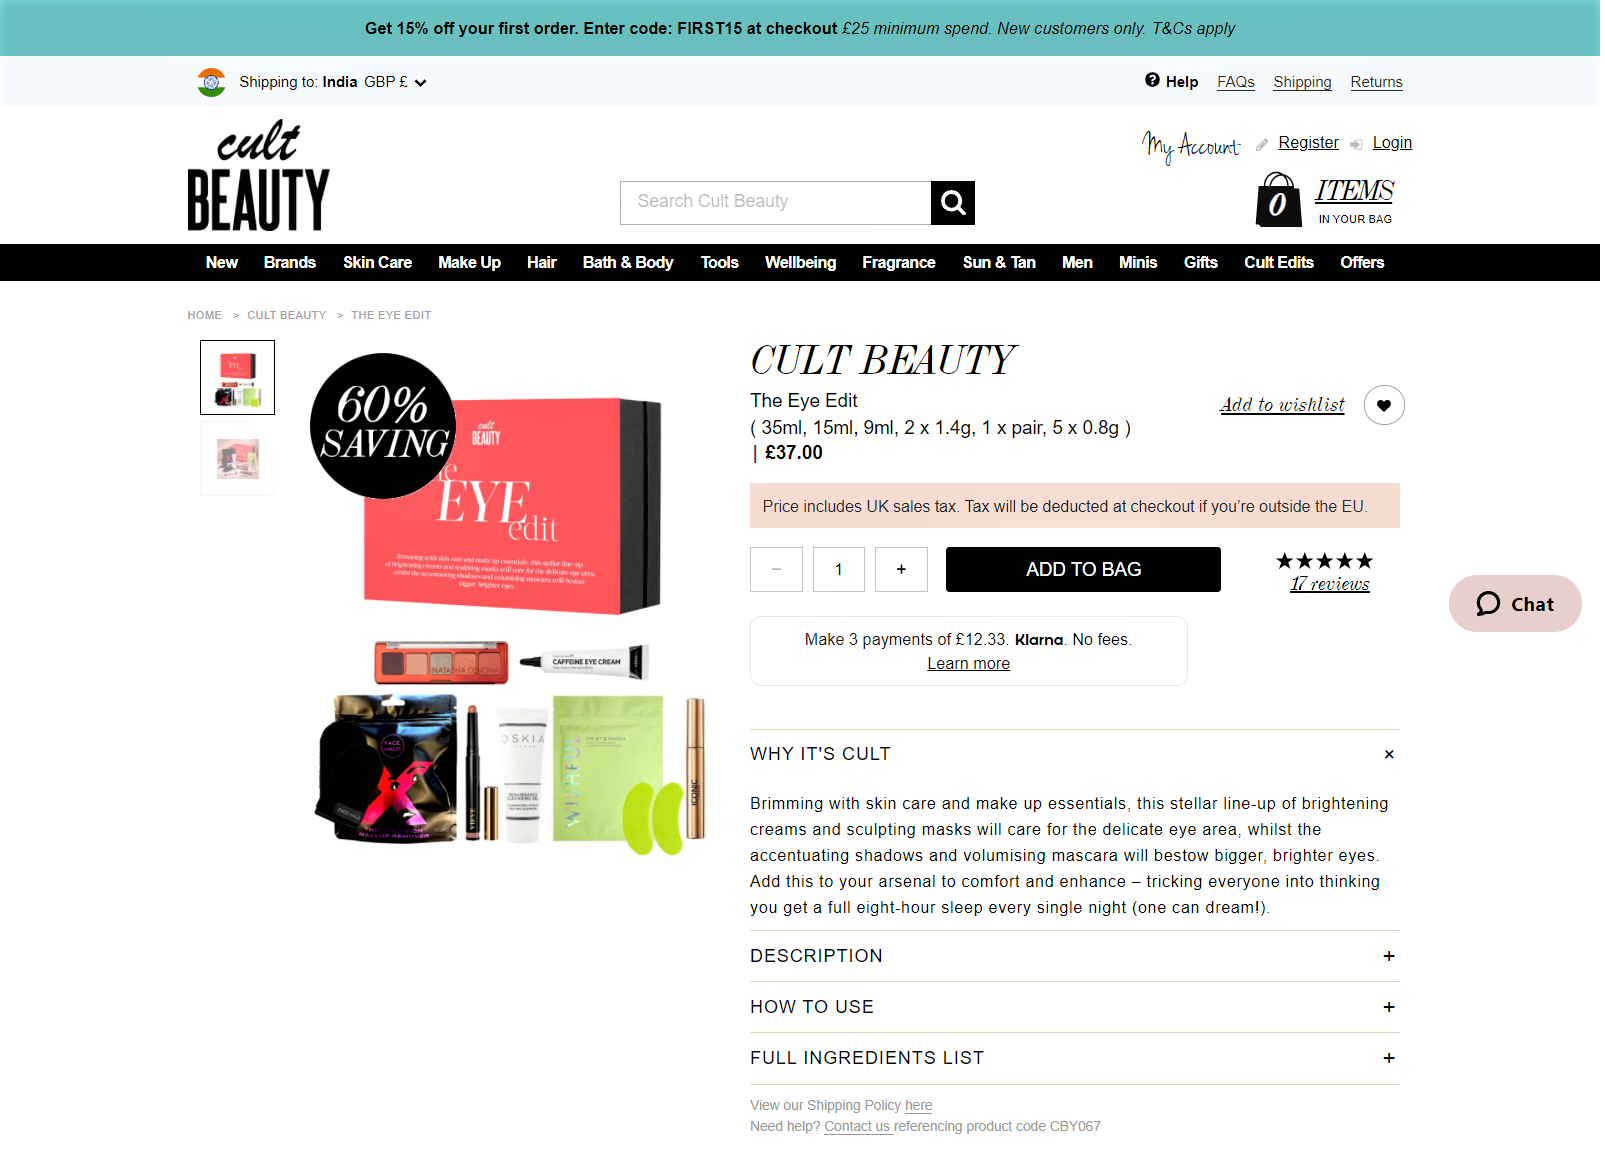 Cult Beauty practices transparency on their product page